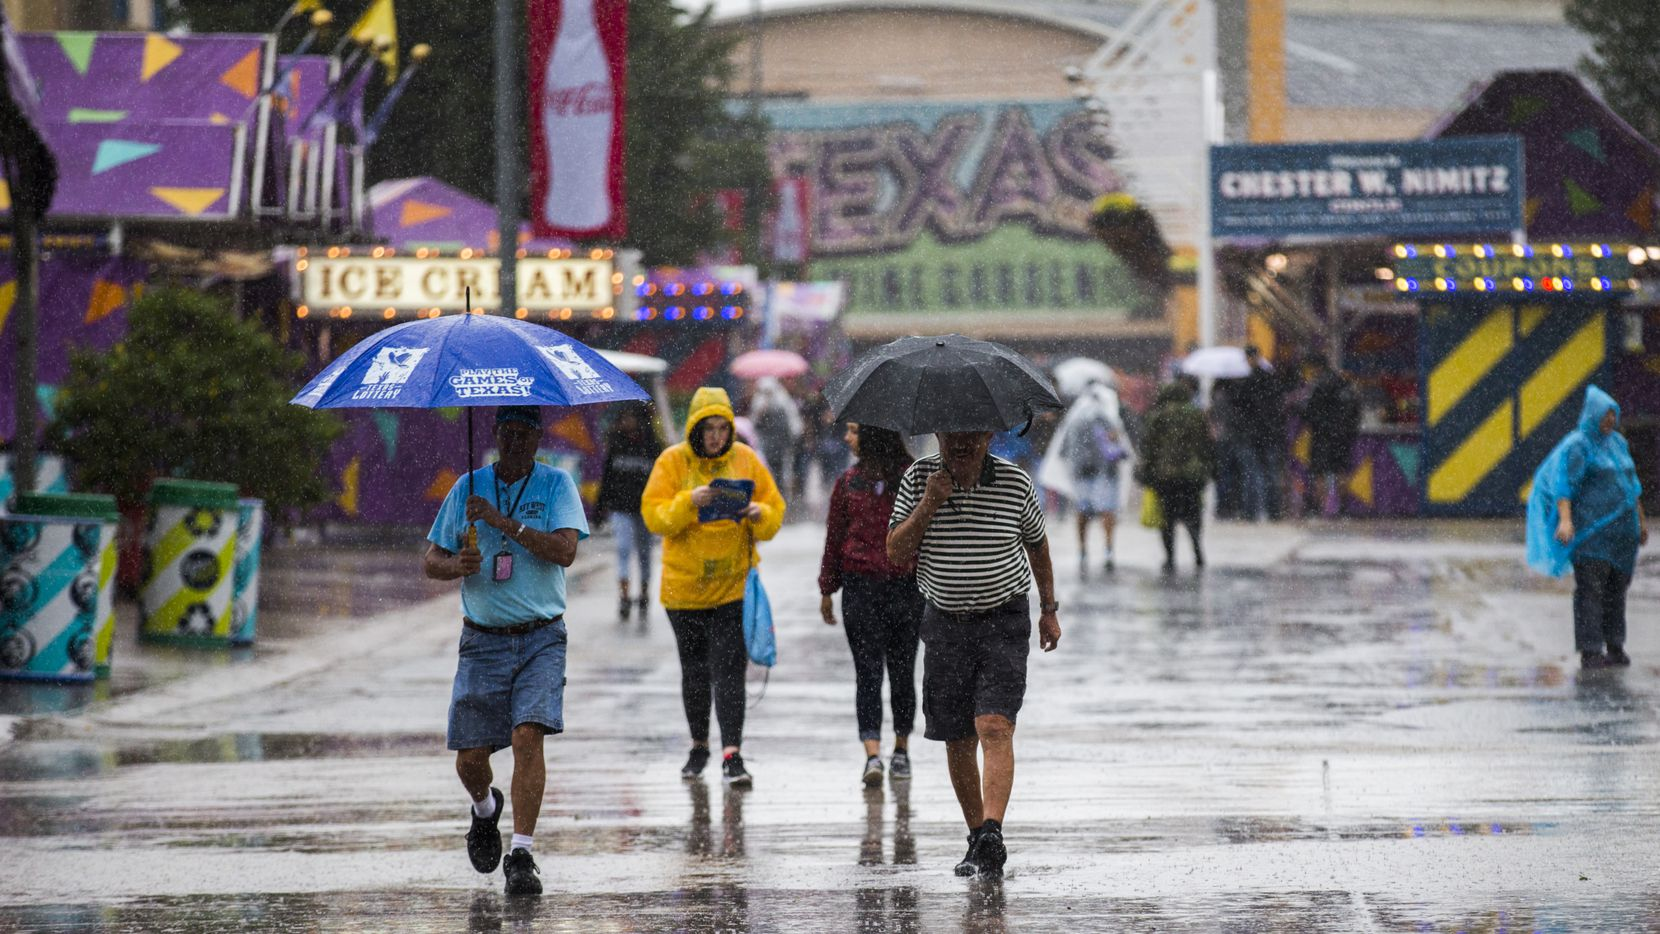 Fairgoers walk through the rain on the Midway at the State Fair of Texas.